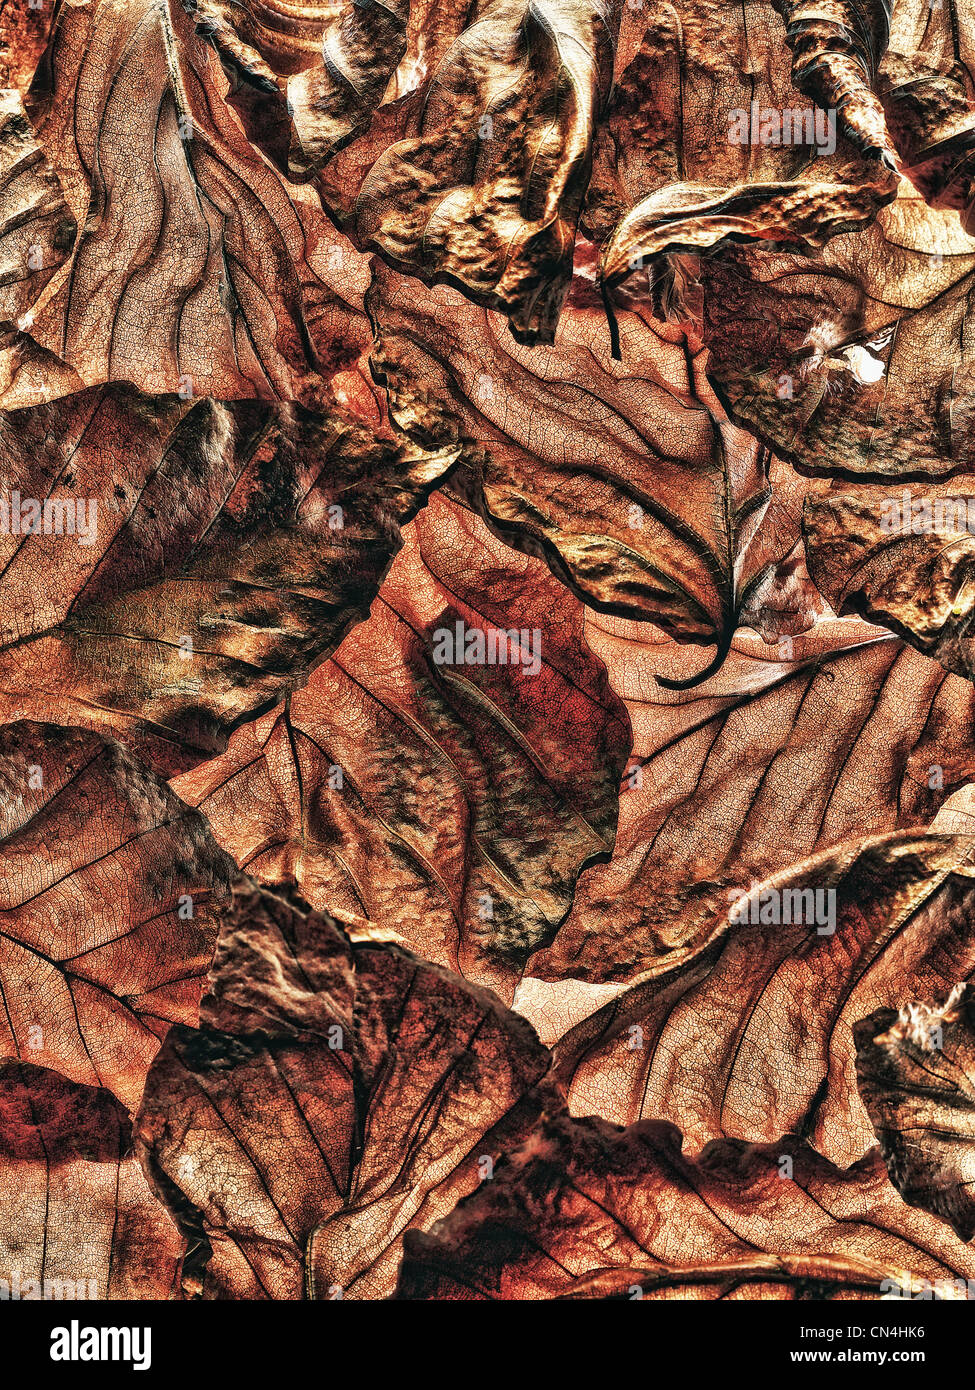 Pile of brown leaves - Stock Image